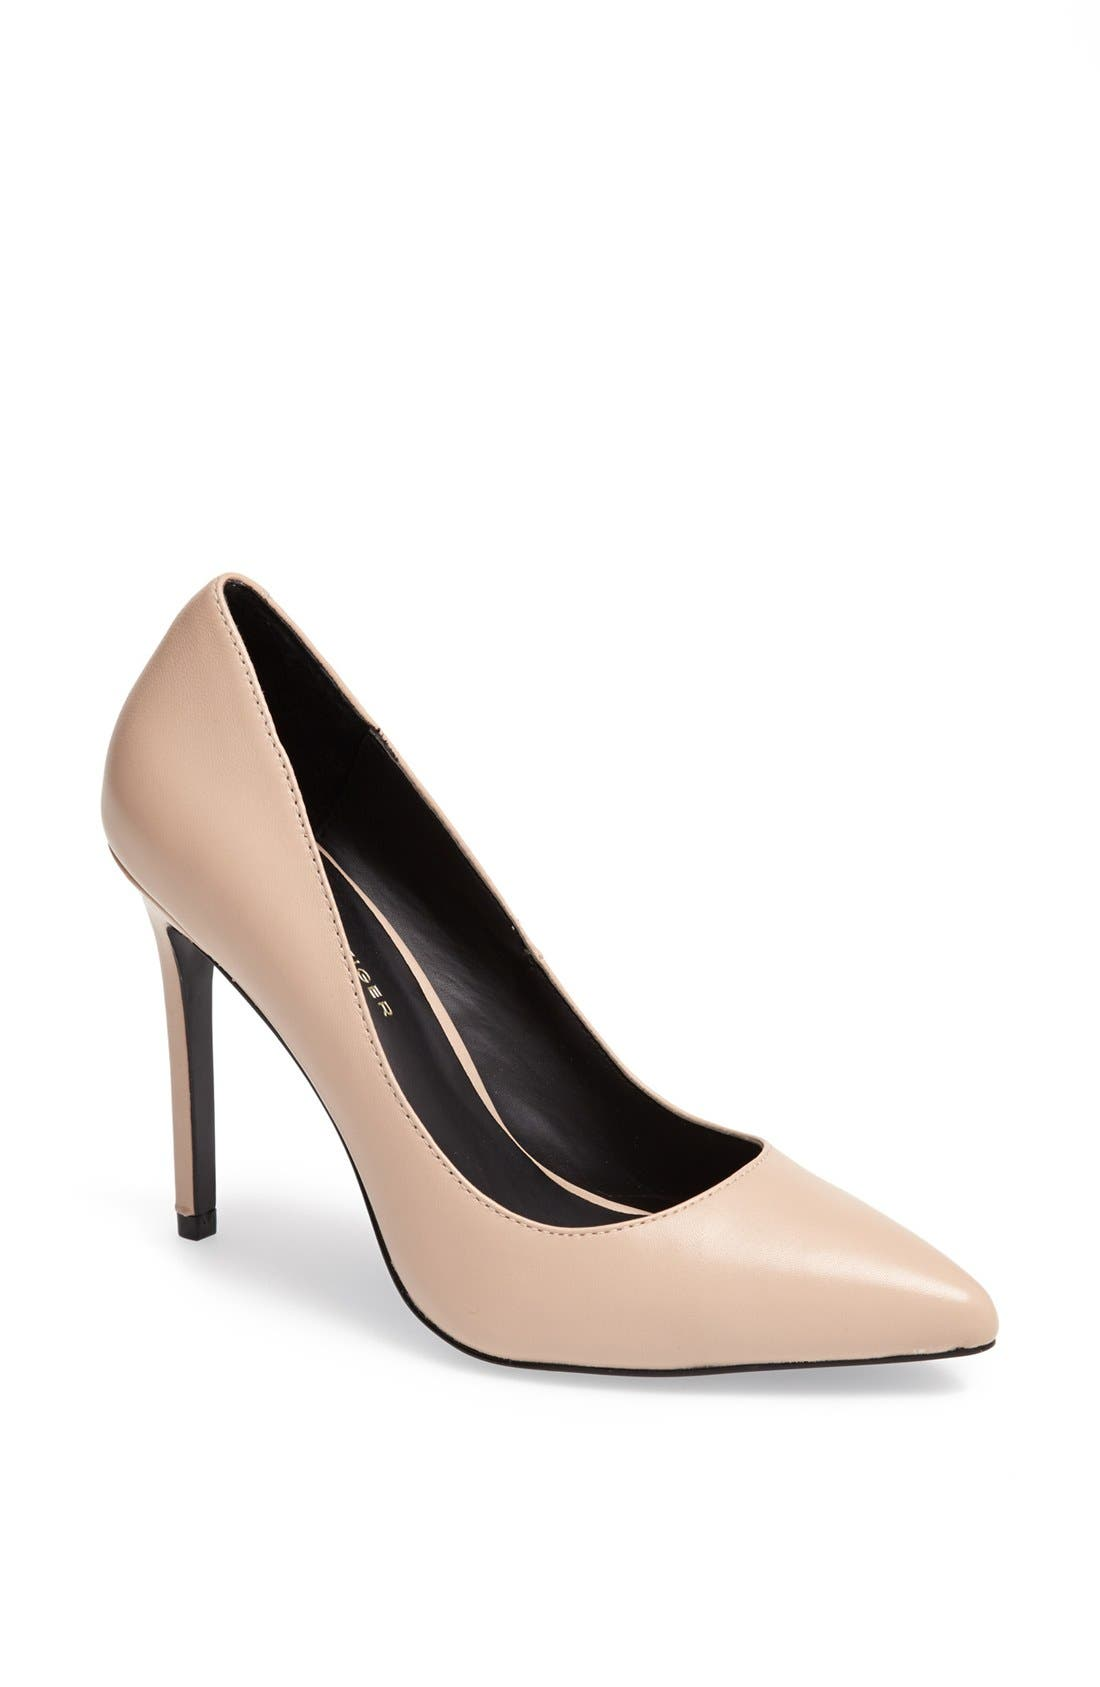 Main Image - KG Kurt Geiger 'Bailey' Leather Pump